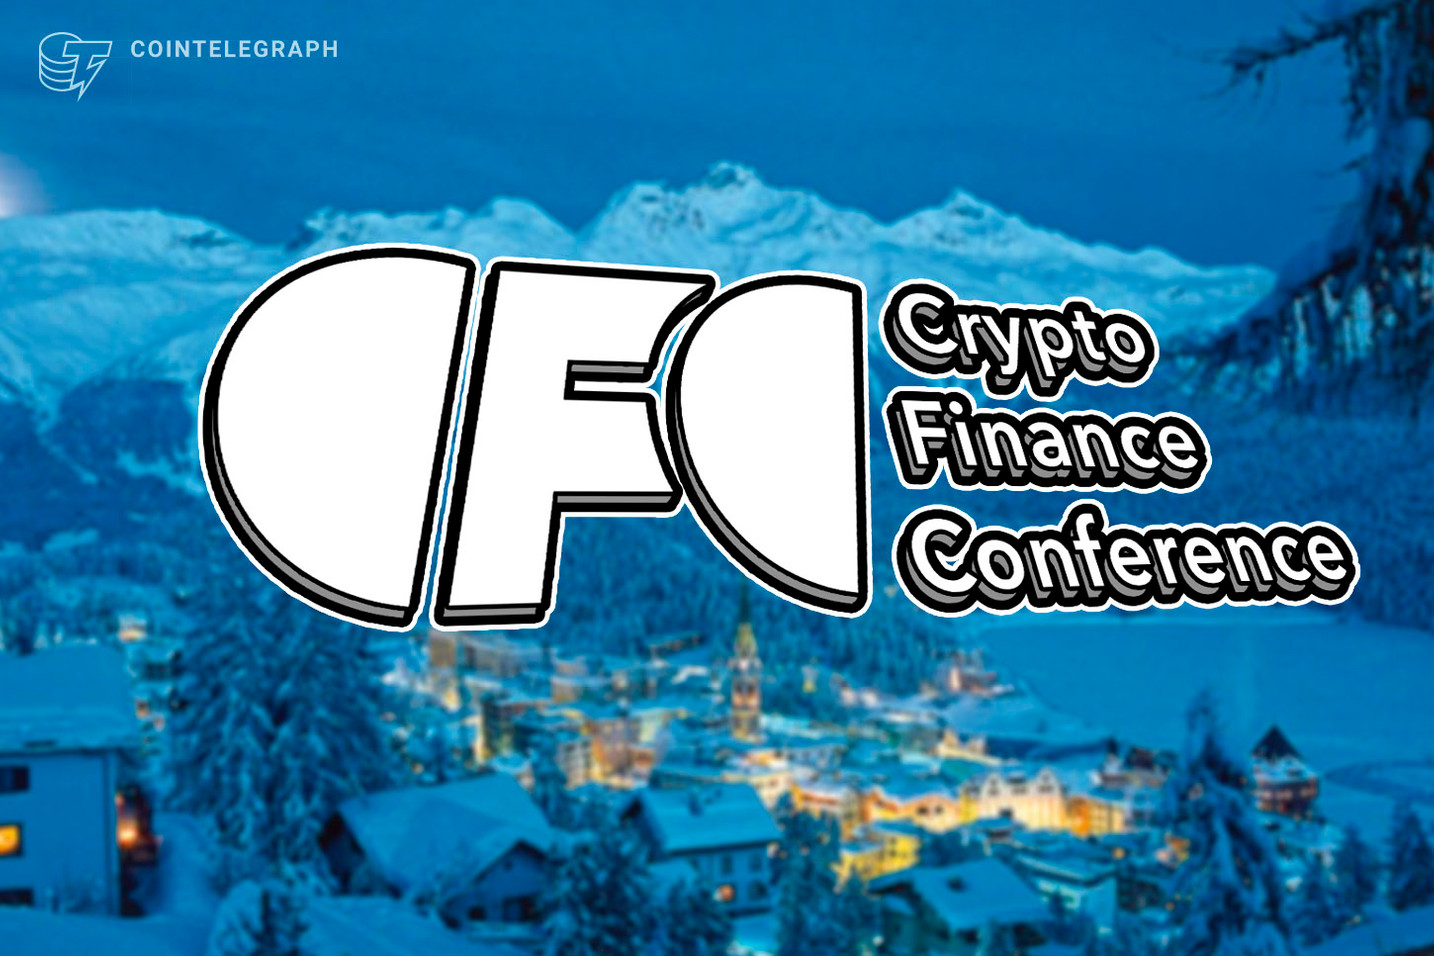 Global Thought Leaders and Blockchain Industry Experts Meeting at Crypto Finance Conference in St. Moritz, Switzerland